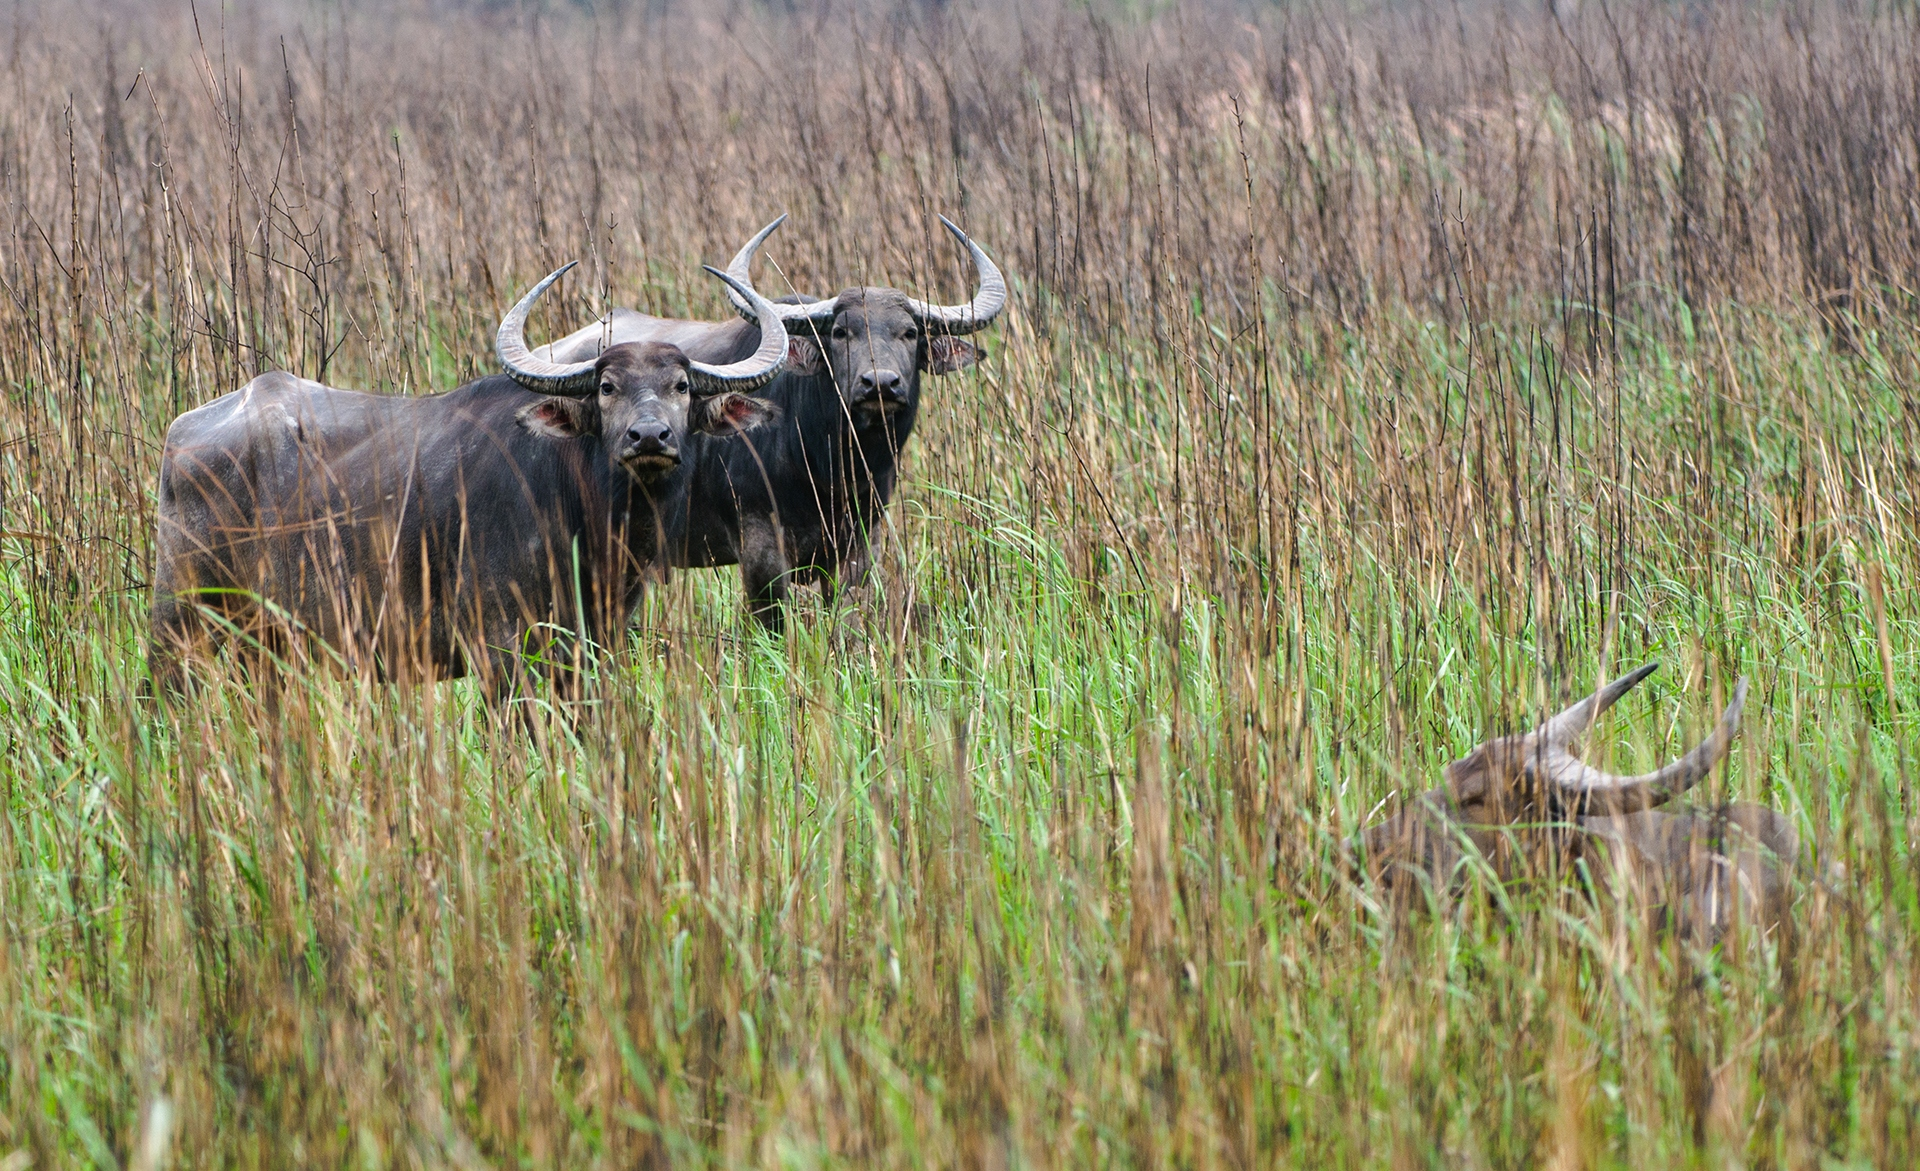 The wild water buffalo population is on the decline. In India it is estimated to be around 2,800-3,000 individuals. Photo: Udayan Borthakur